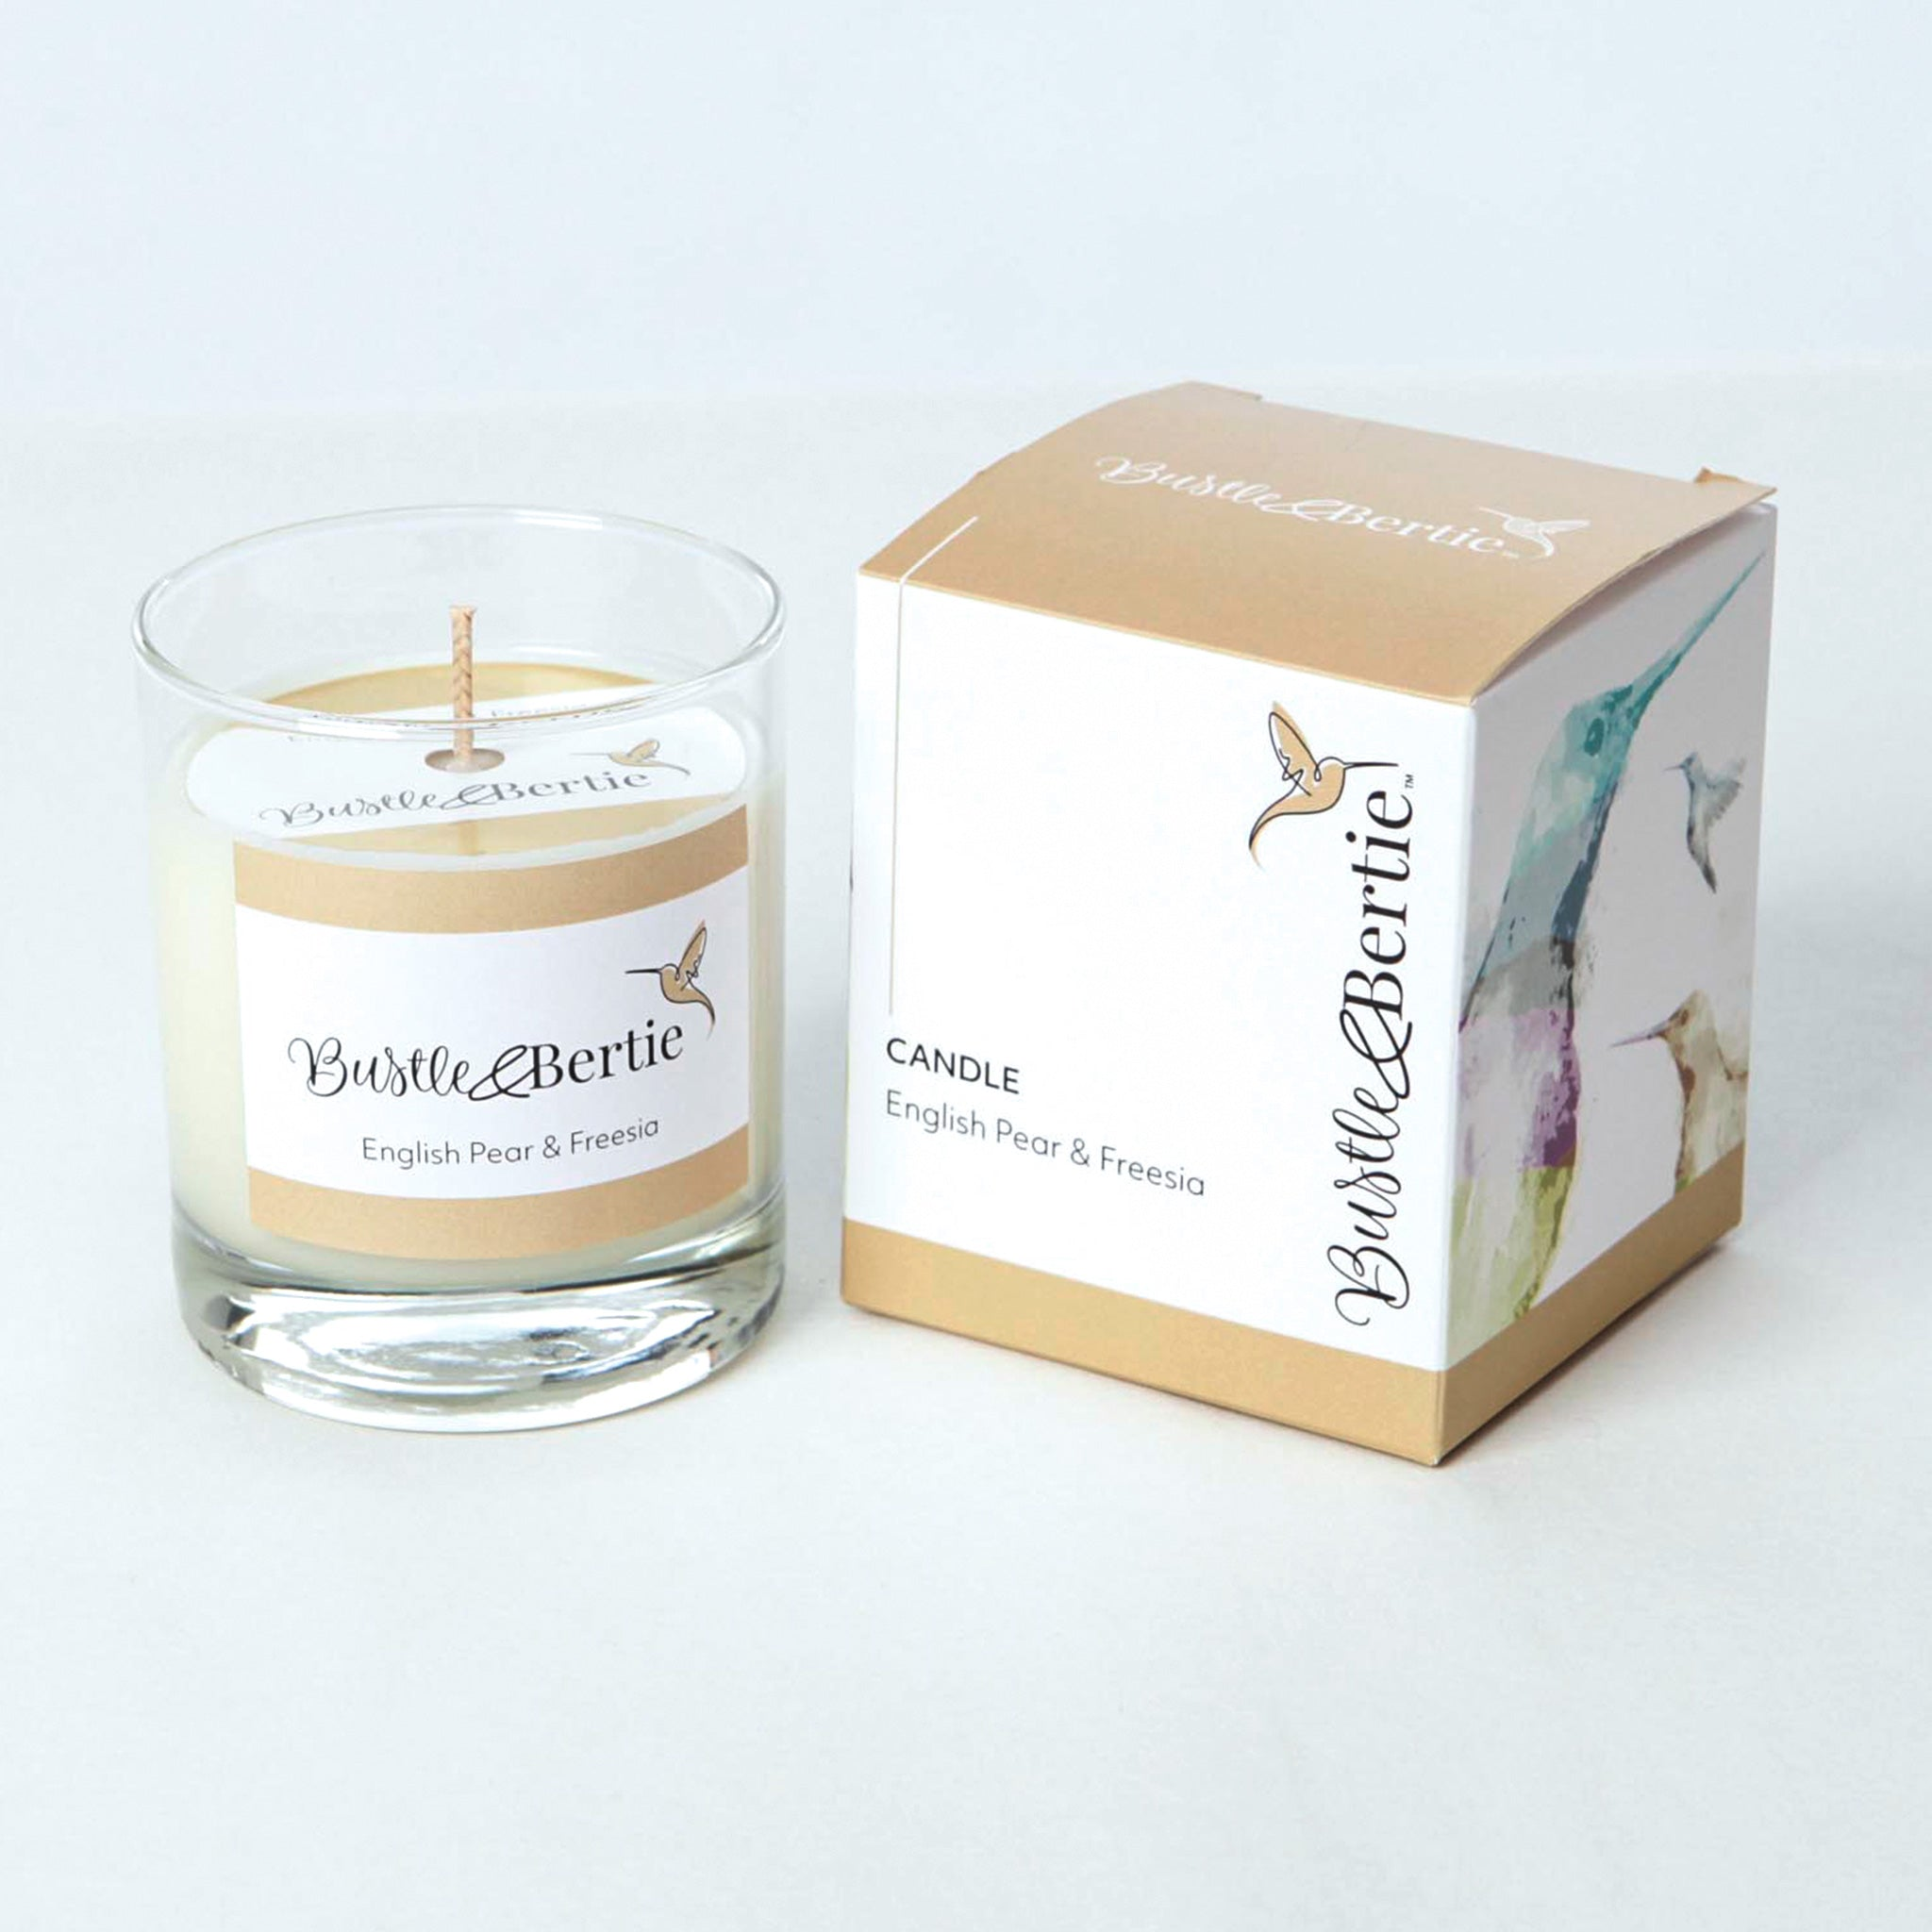 English Pear & Freesia Candle